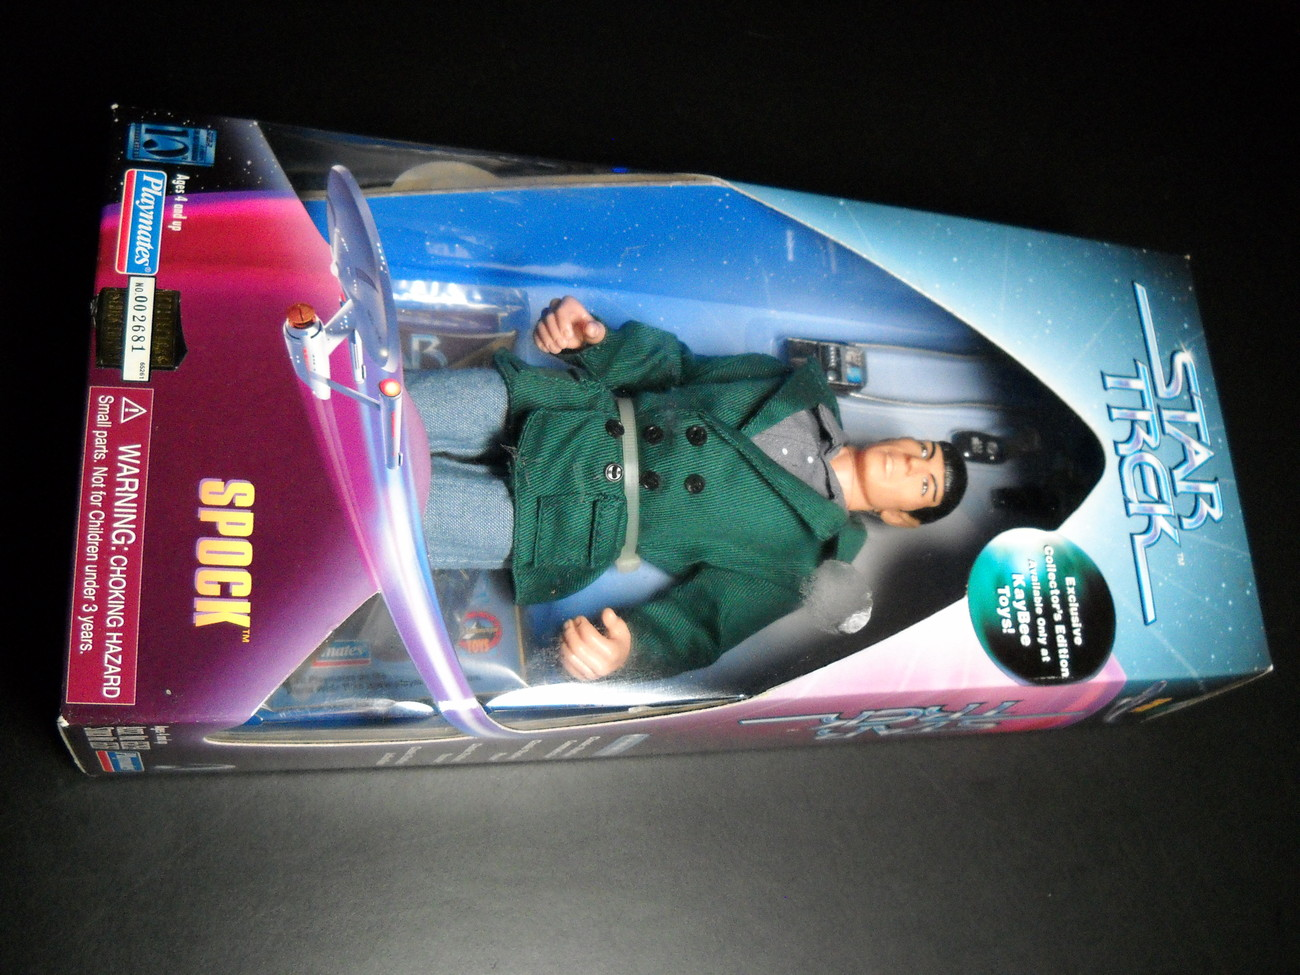 Toy star trek playmates kaybee toy exclusive spock coteof 1997 9 inch boxed sealed 01